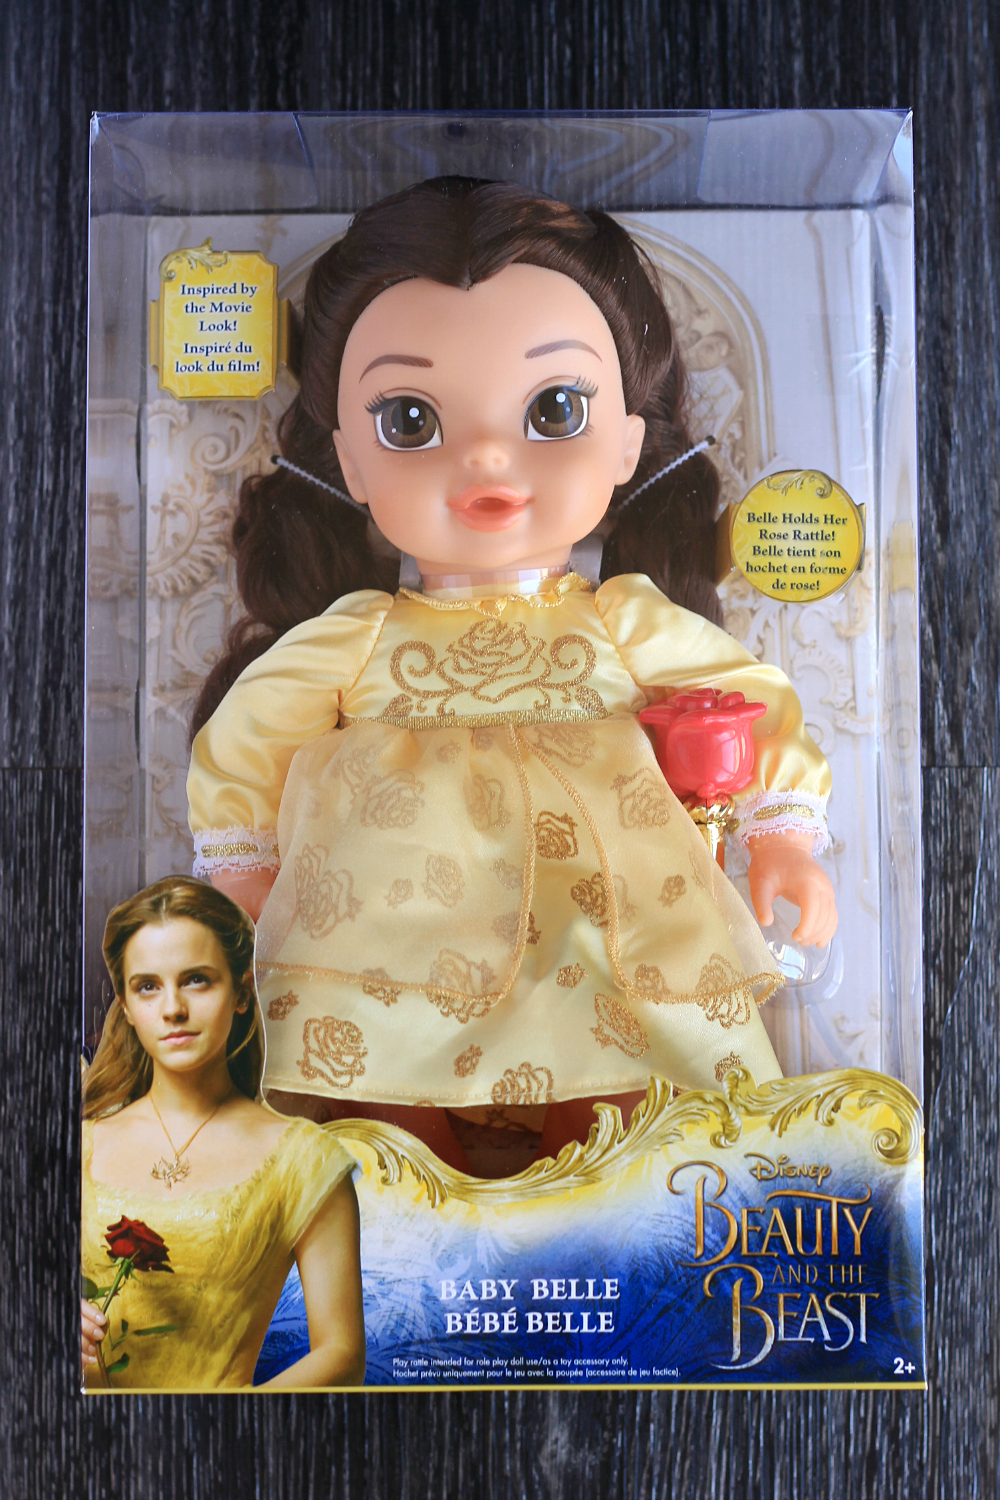 Disney's Beauty and the Beast Baby Belle